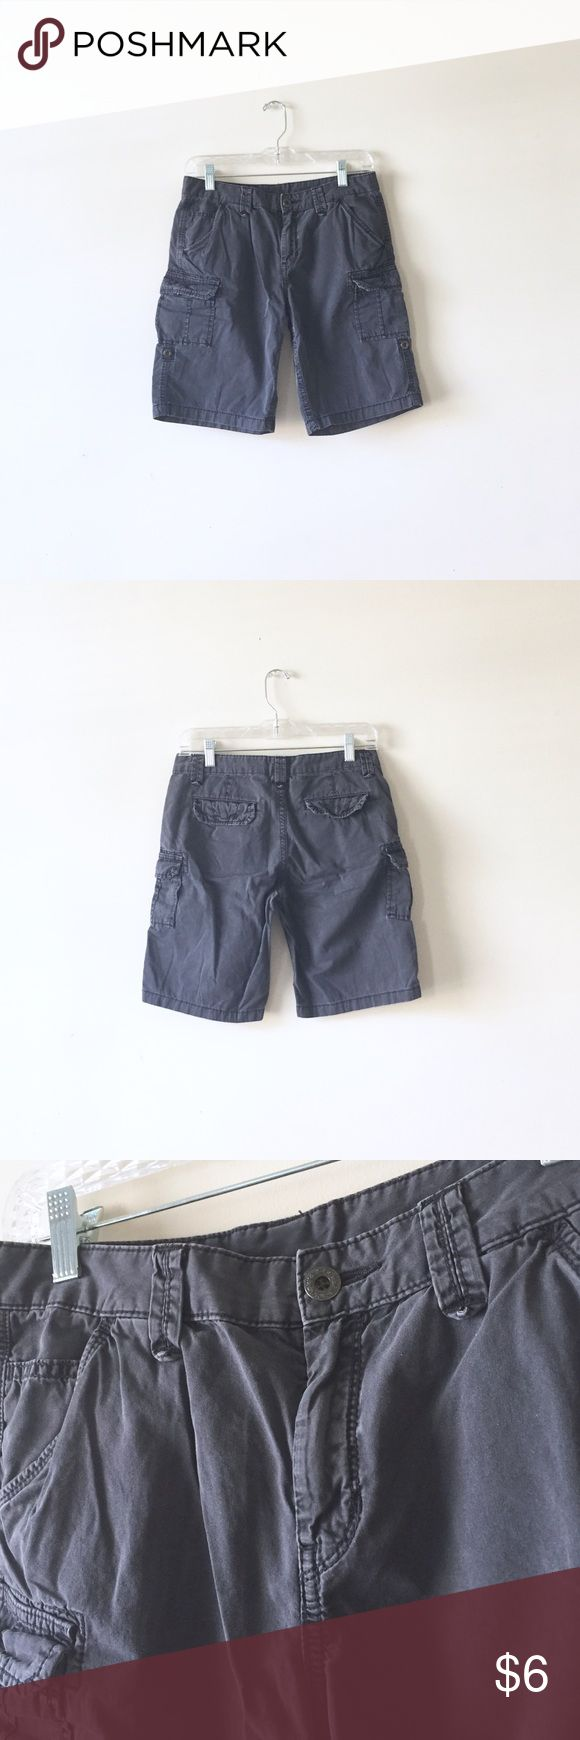 "Uniqlo cargo shorts Size 2 on tag. 30"" waist, 10"" inseam. Dark gray. Uniqlo Shorts Cargos"